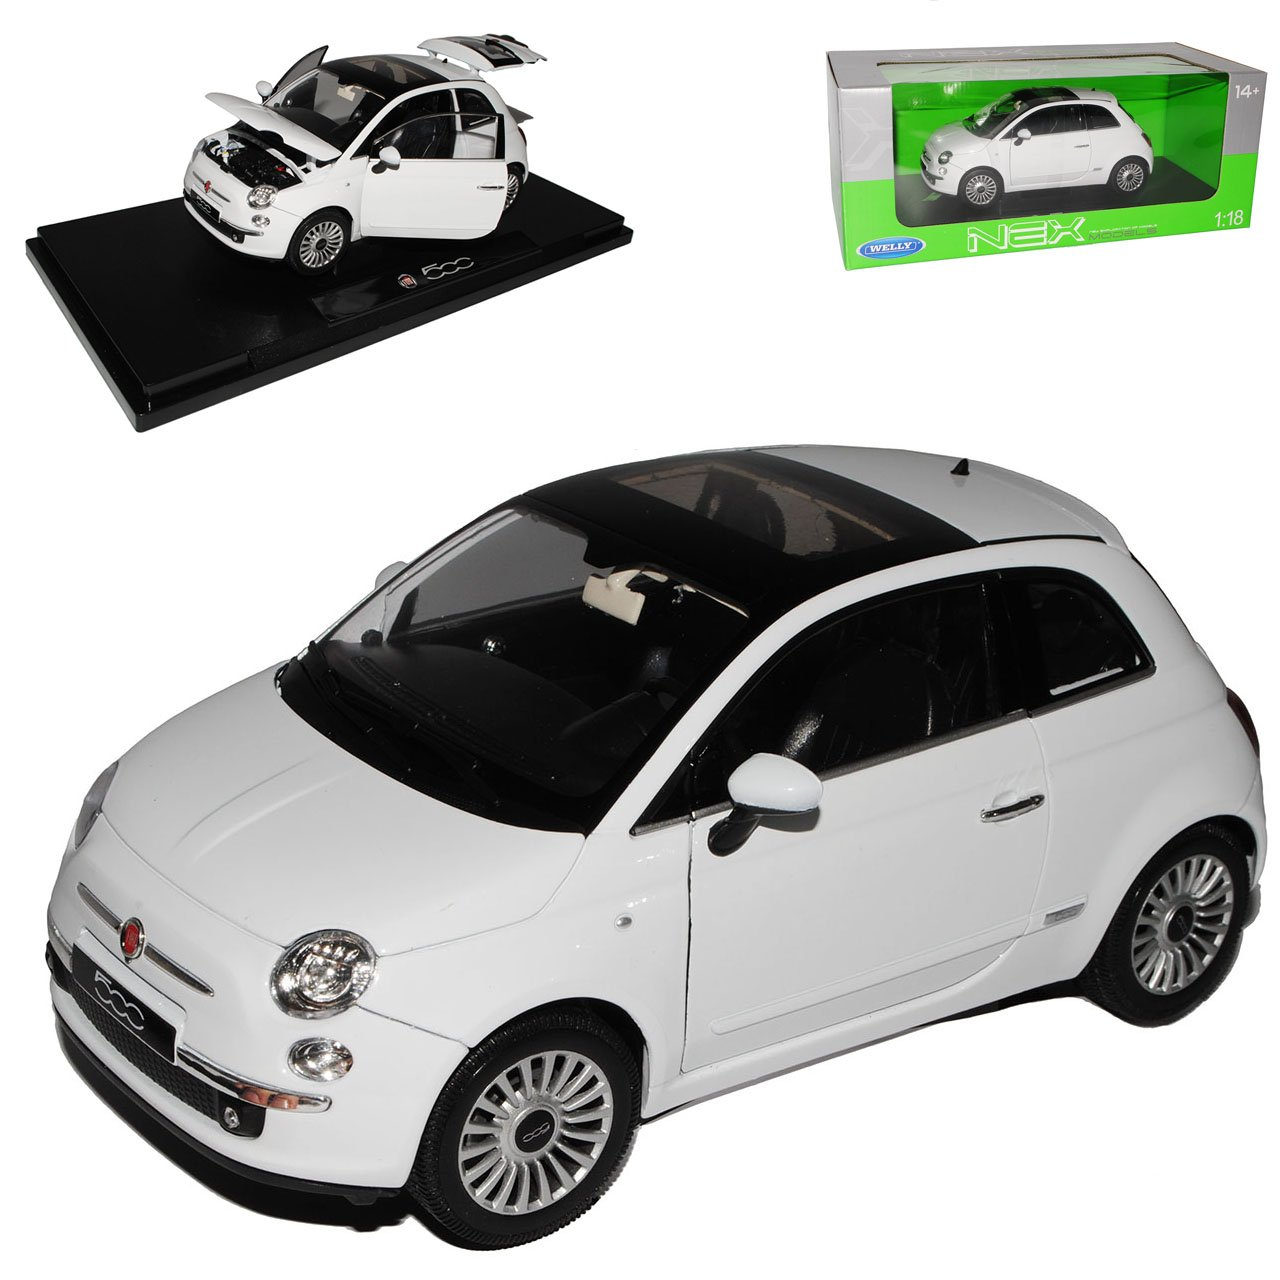 Welly FIAT 500 Nuova Weiss Coupe Coupe Coupe Ab 2007 1/18 Modell Auto cab322